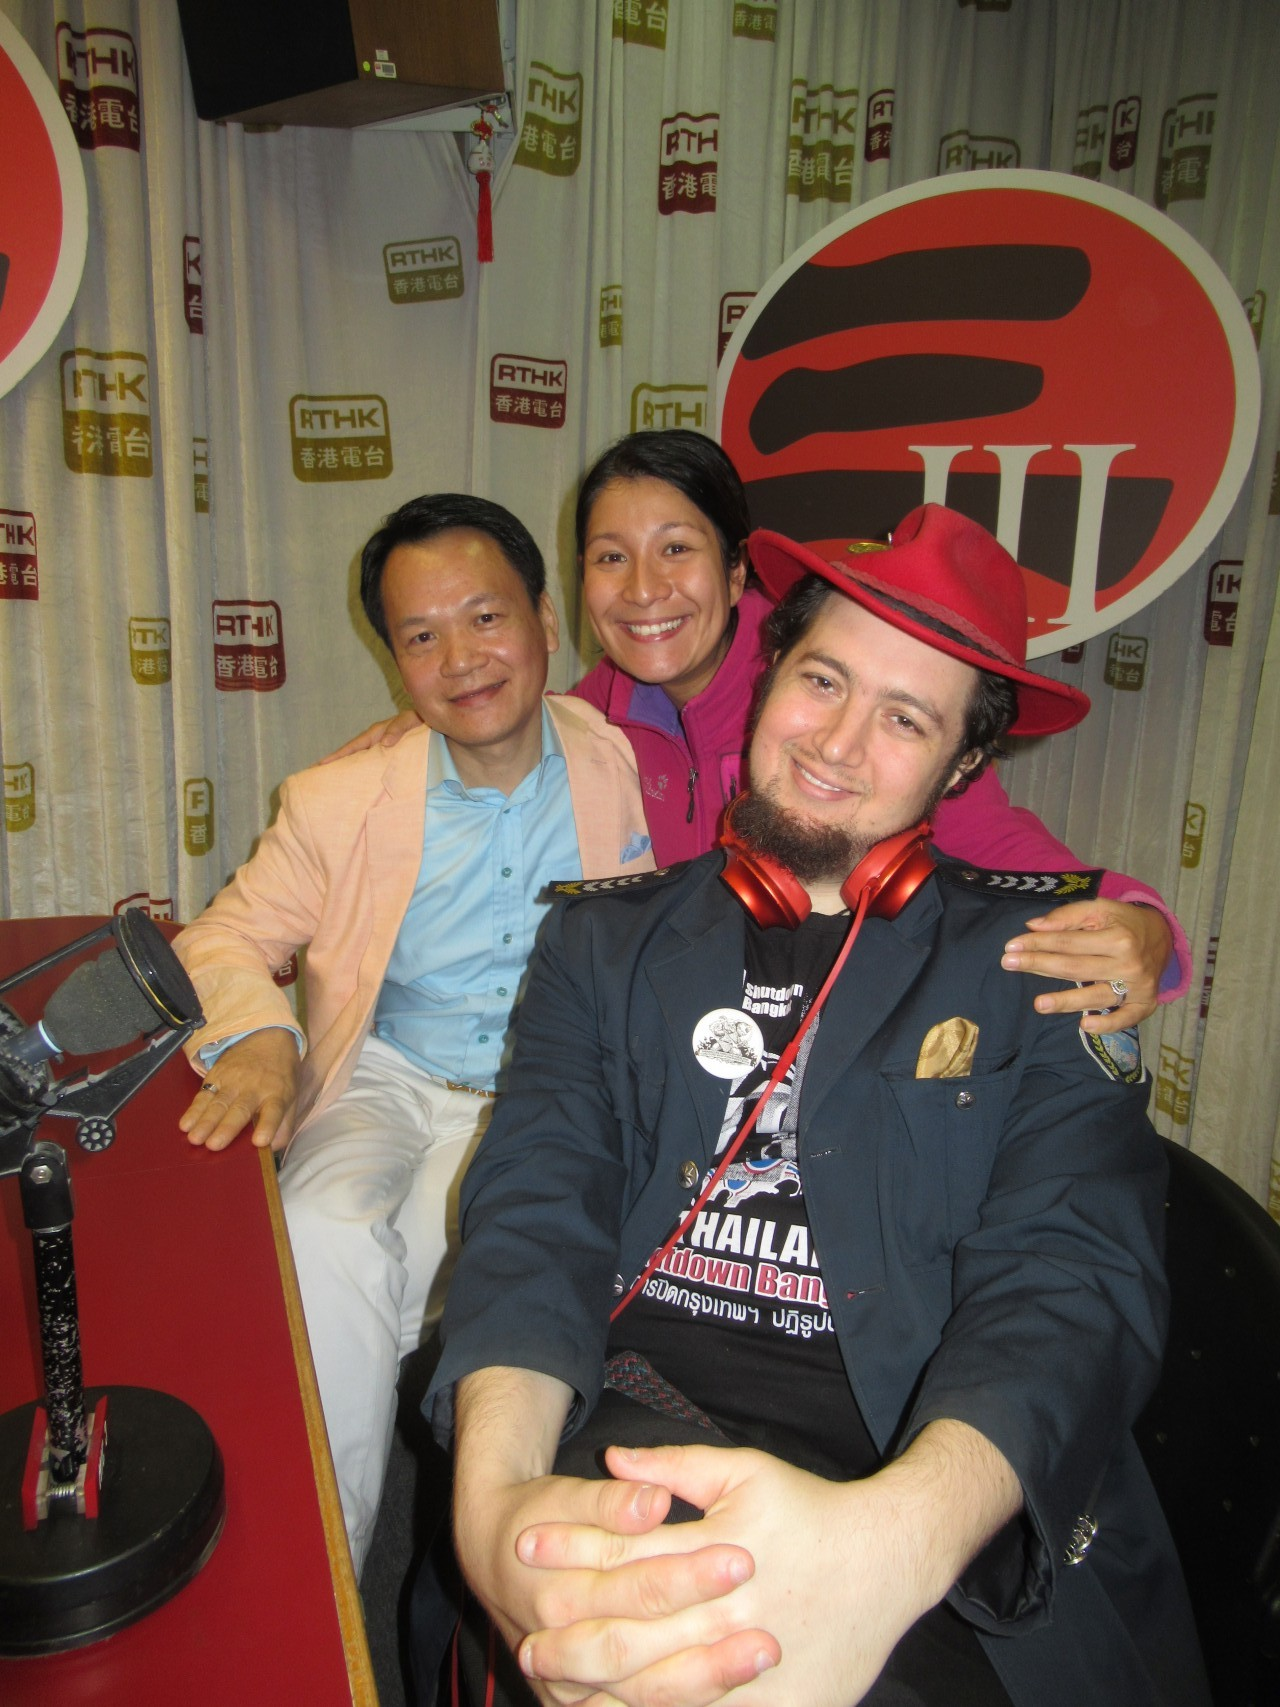 The Record Museum RTHK 3 INTERVIEW